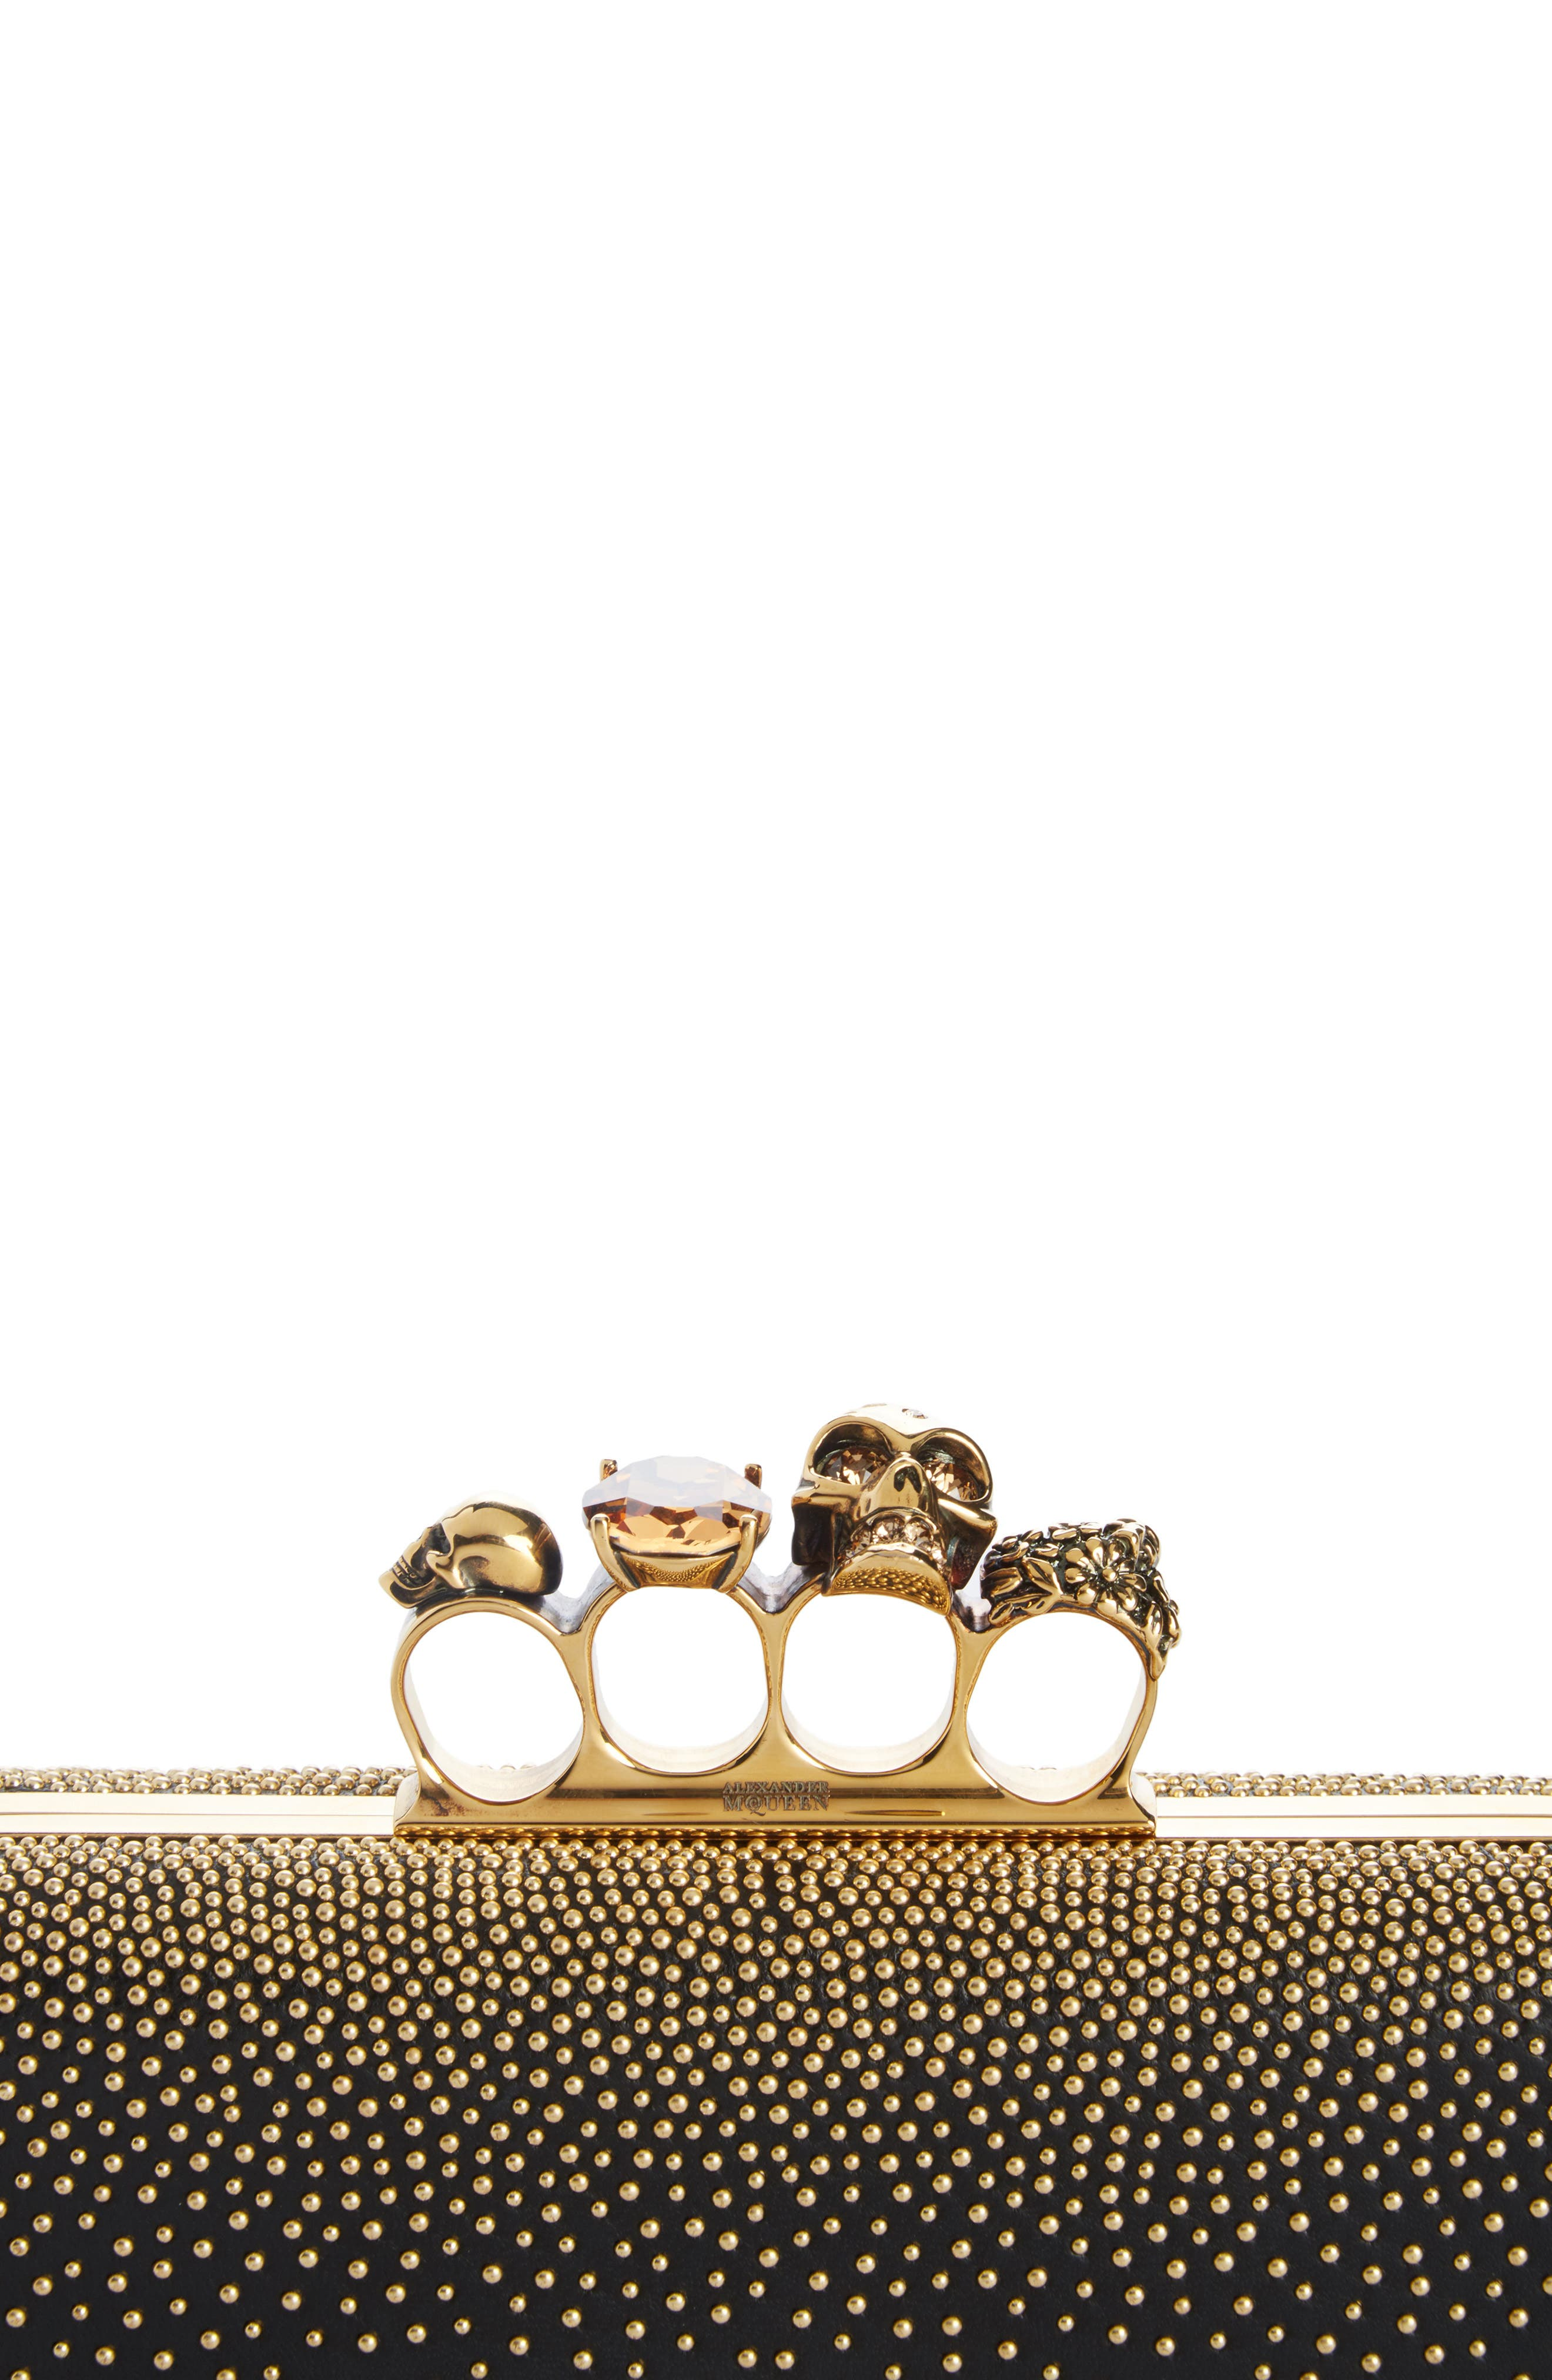 Studded Leather Knuckle Clutch,                             Alternate thumbnail 7, color,                             001